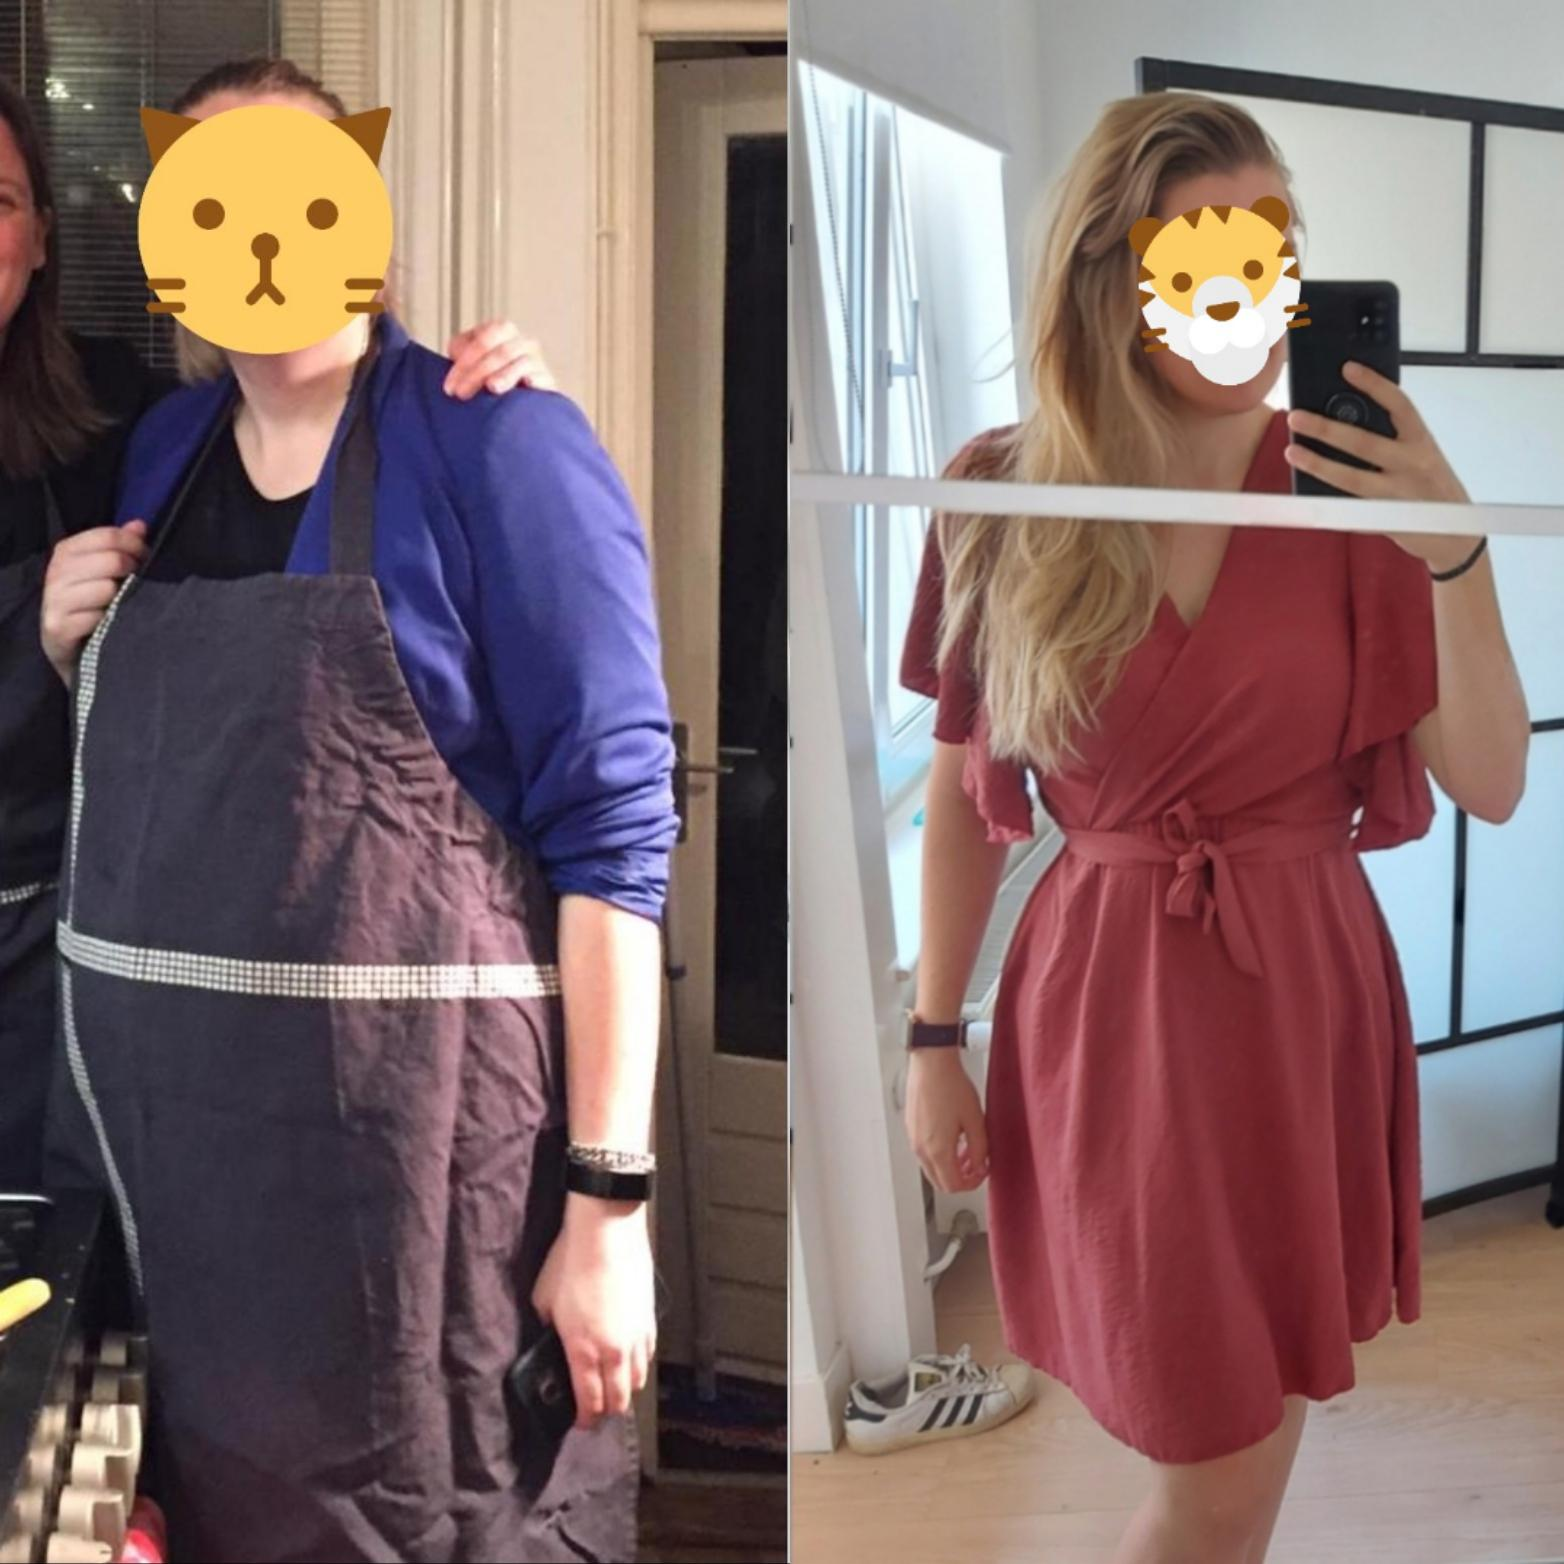 110 lbs Fat Loss Before and After 5 foot 7 Female 265 lbs to 155 lbs